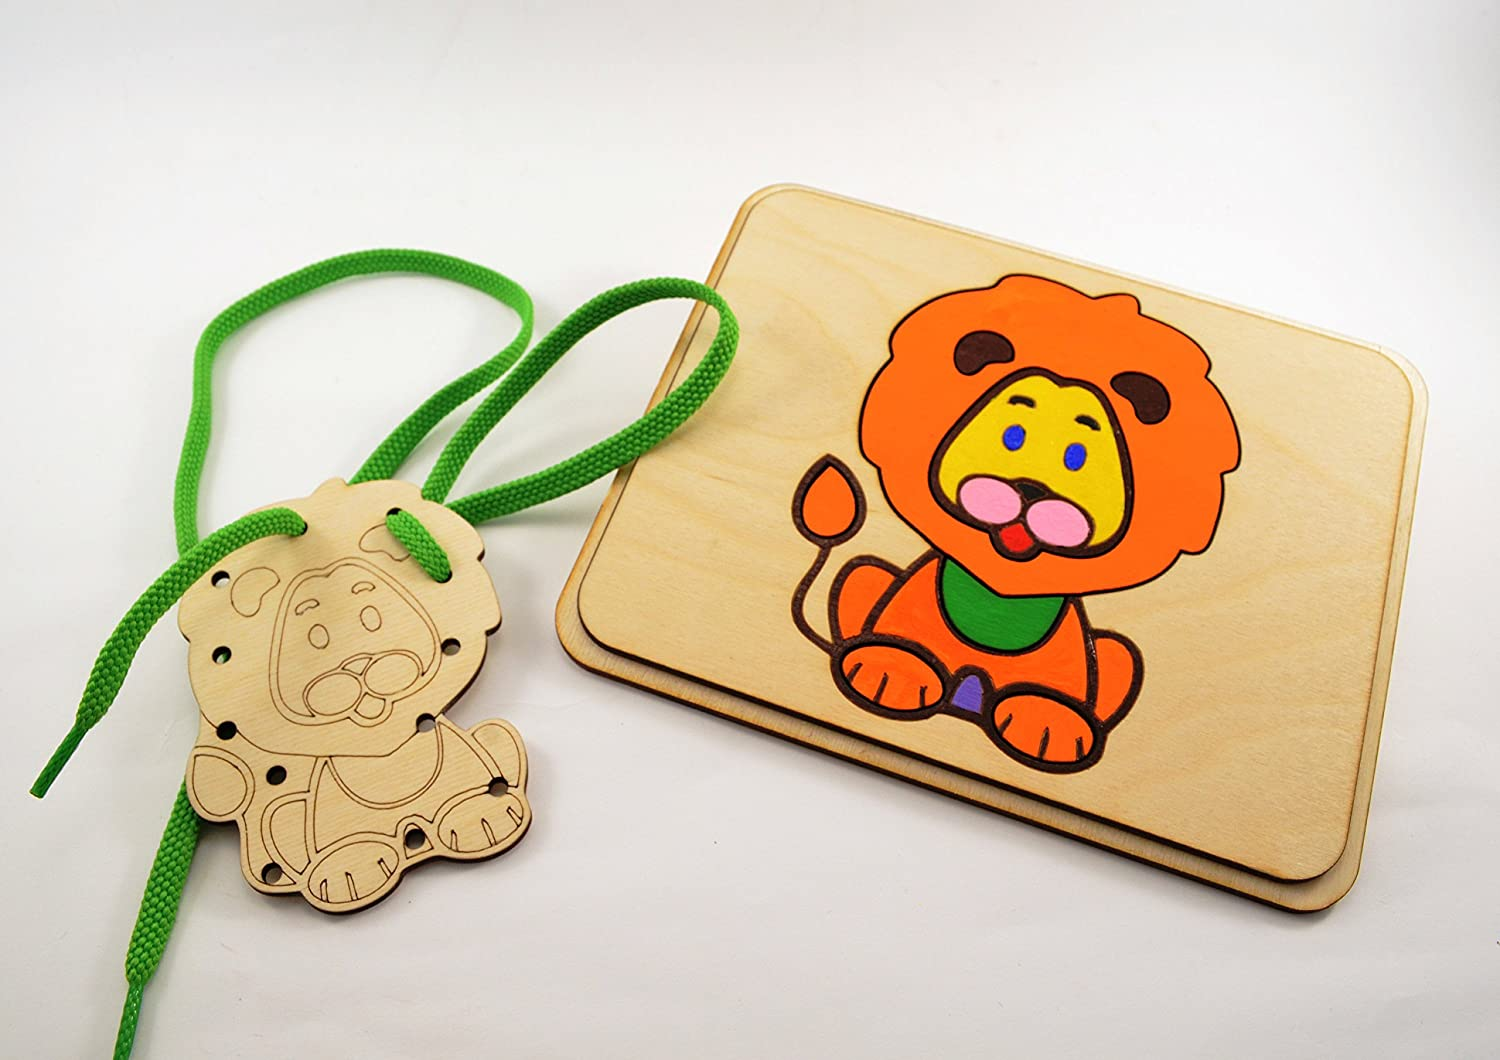 Set of Lion Wooden puzzle and Lacing Toy Waldorf toy Wooden toy Motor skills toys Occupational Therapy Special Needs Sensory toys Baby Gifts